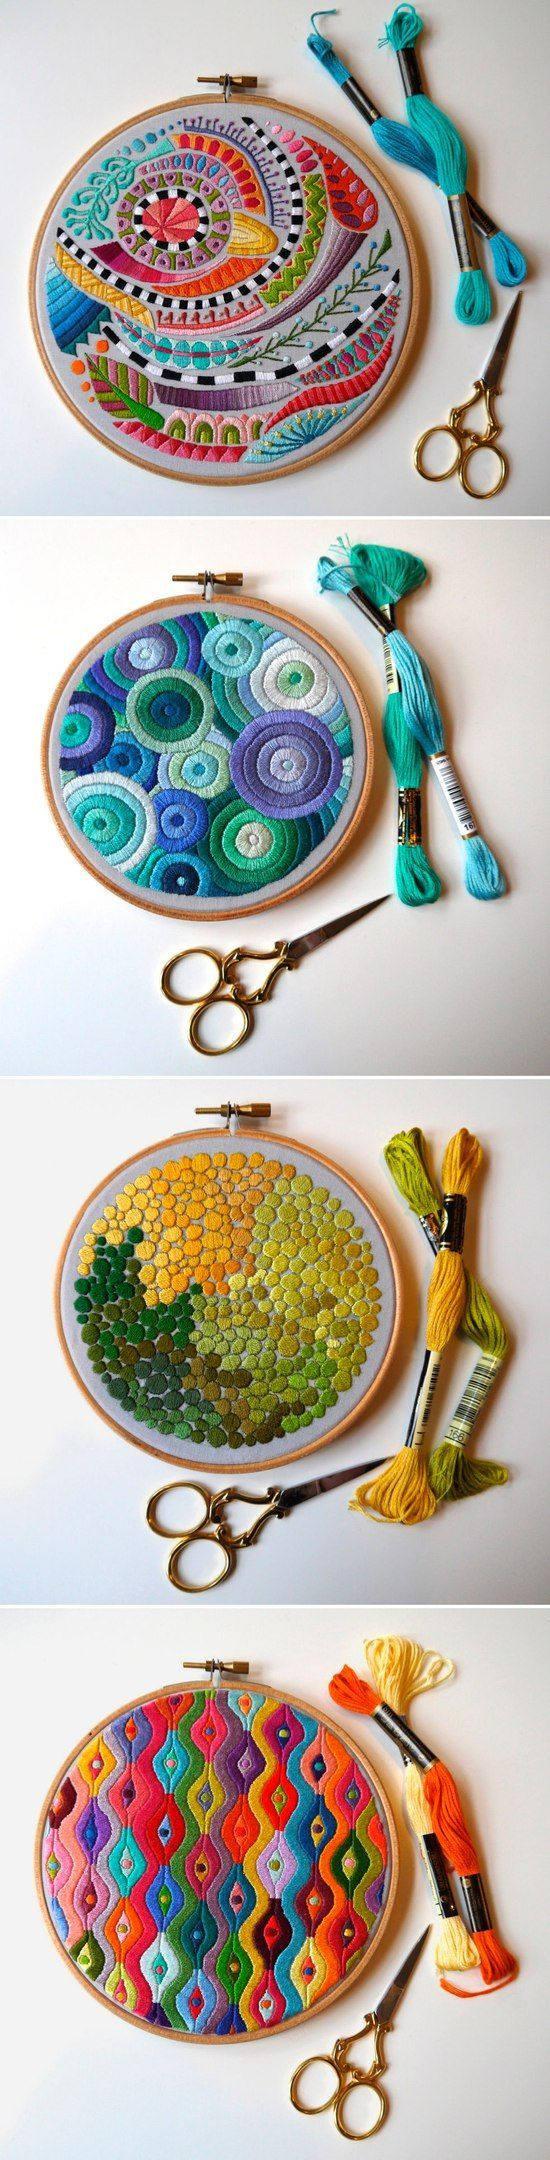 Amazing Embroidery by Corinne Sleight | Corinne Sleight